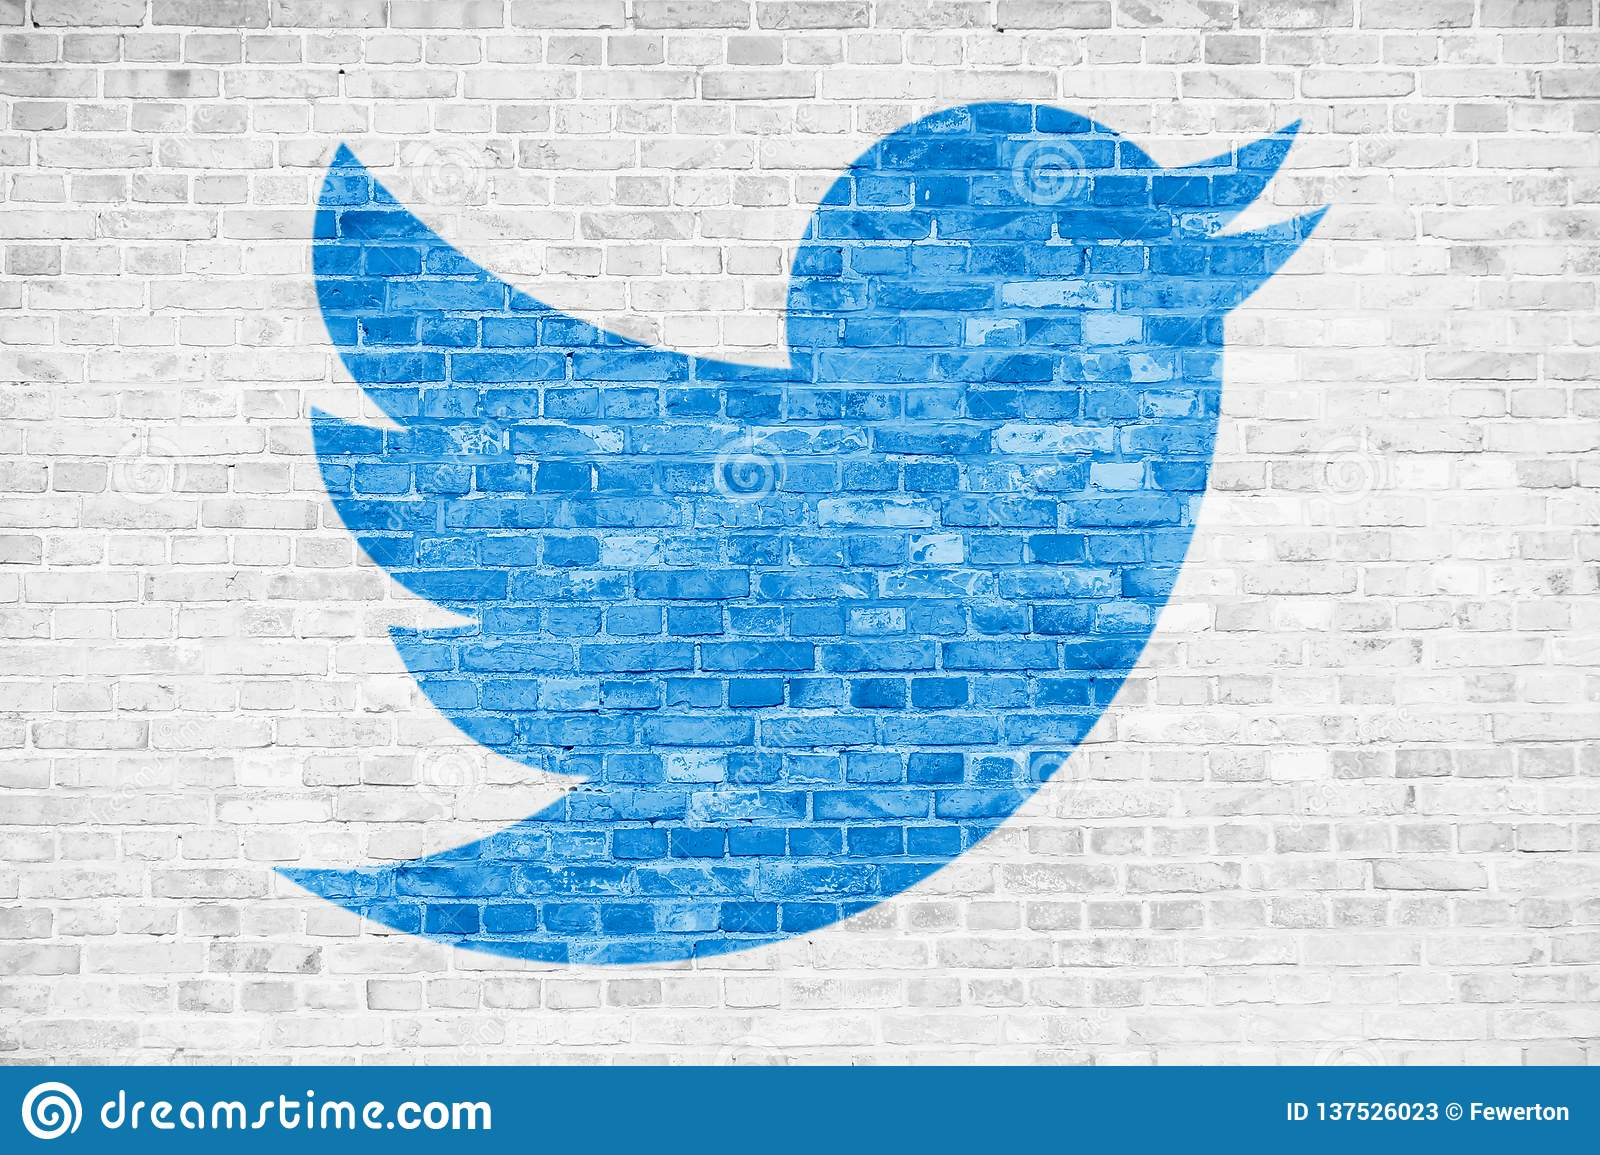 Twitter social media blue bird sign logo symbol in minimalist design painted over white brick wall background